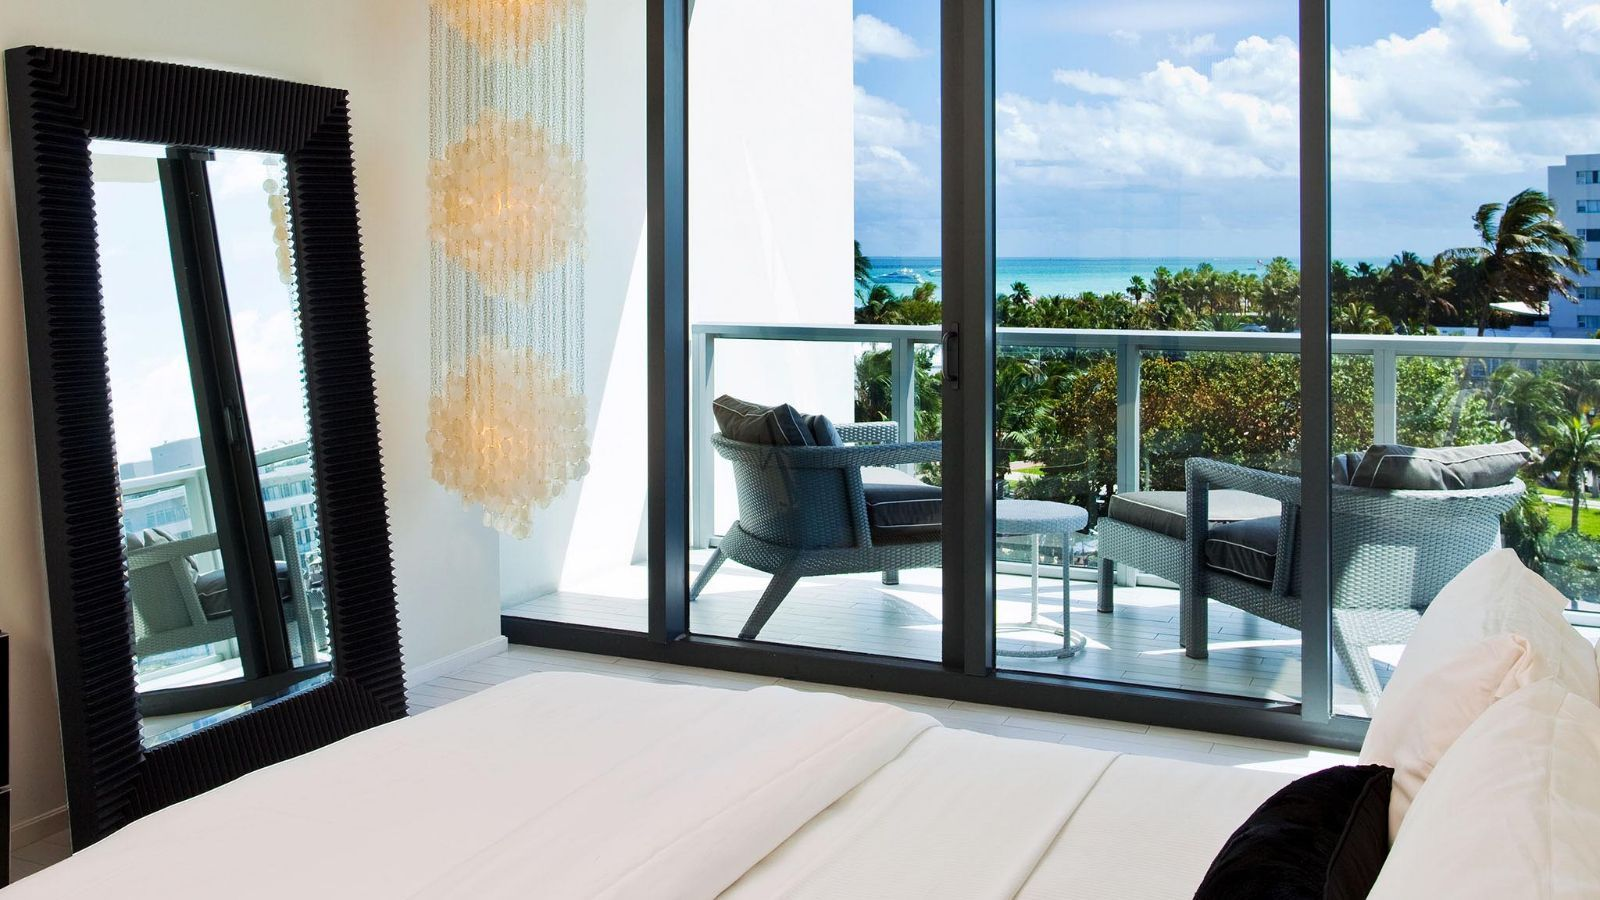 Sensational Ocean View Suite with balcony